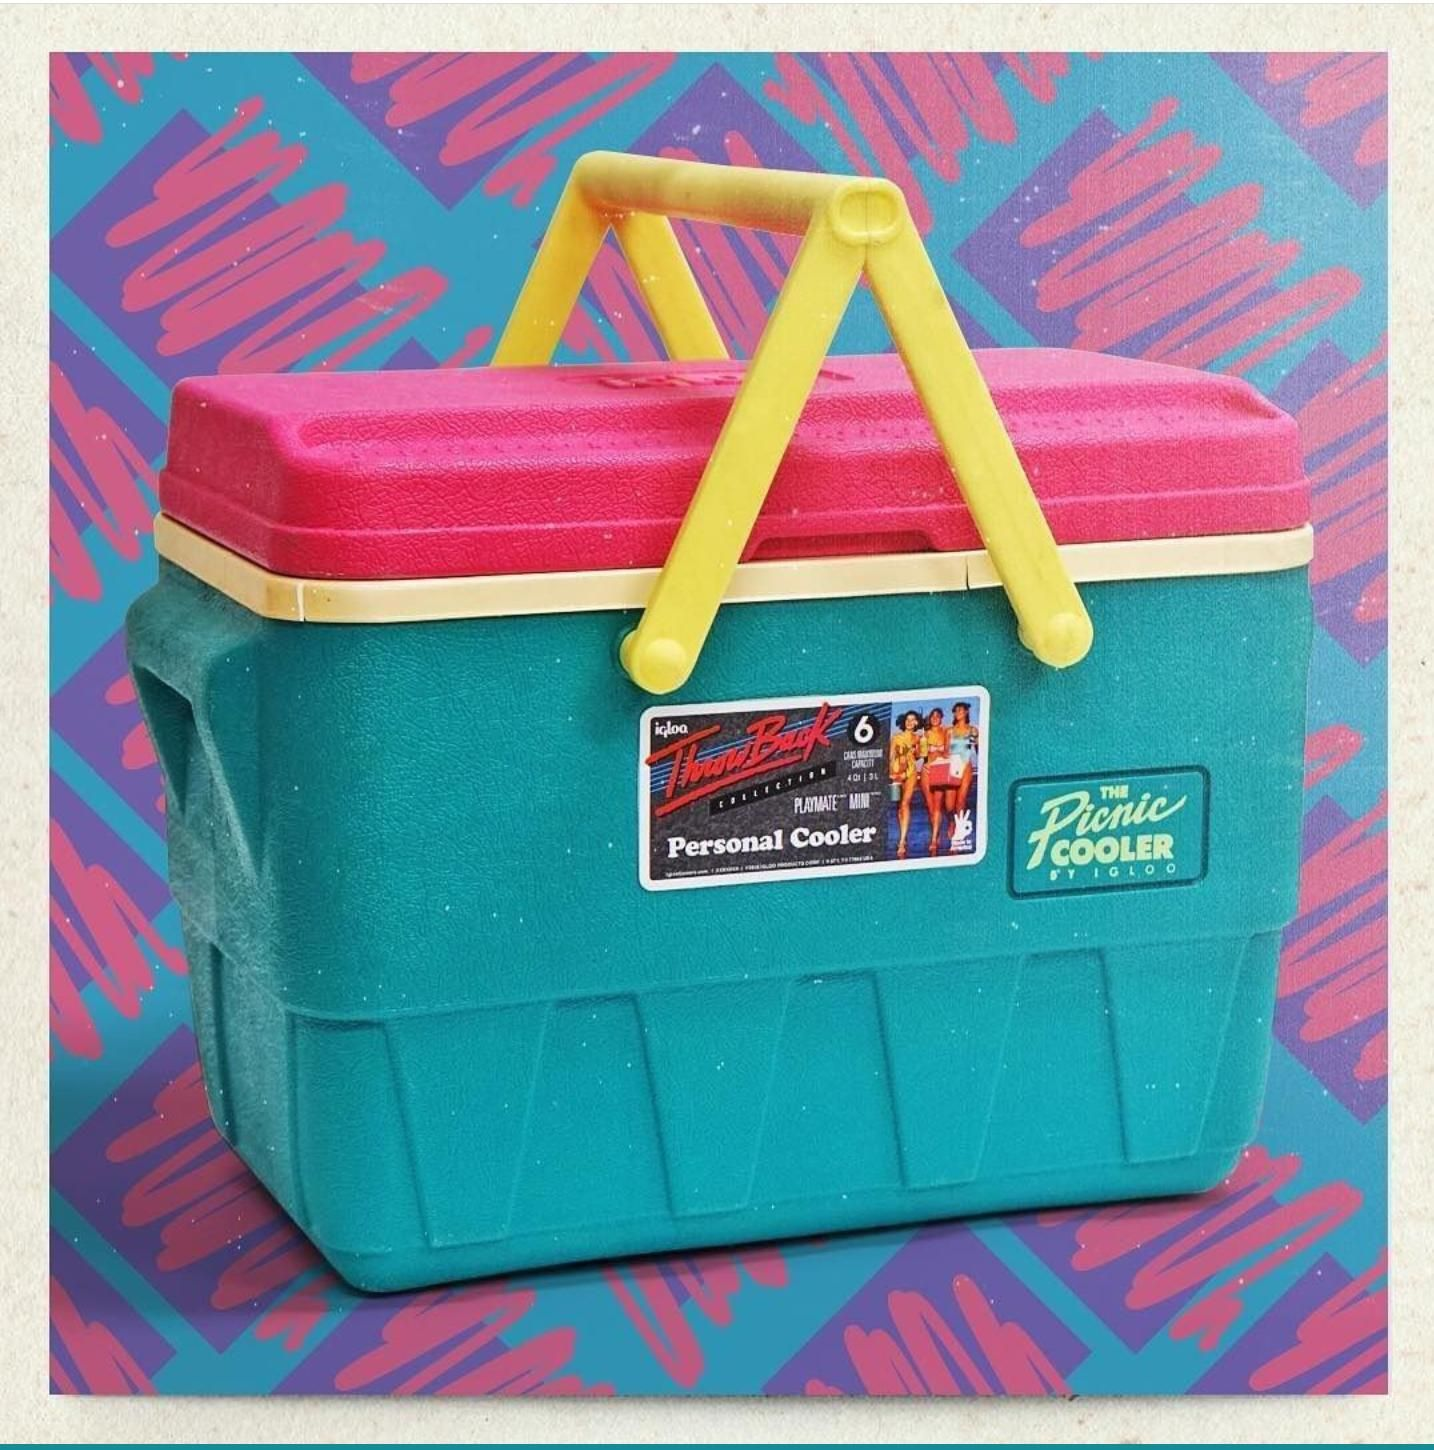 Pink cooler Vintage Little Playmate Personal Cooler by Igloo Neon green